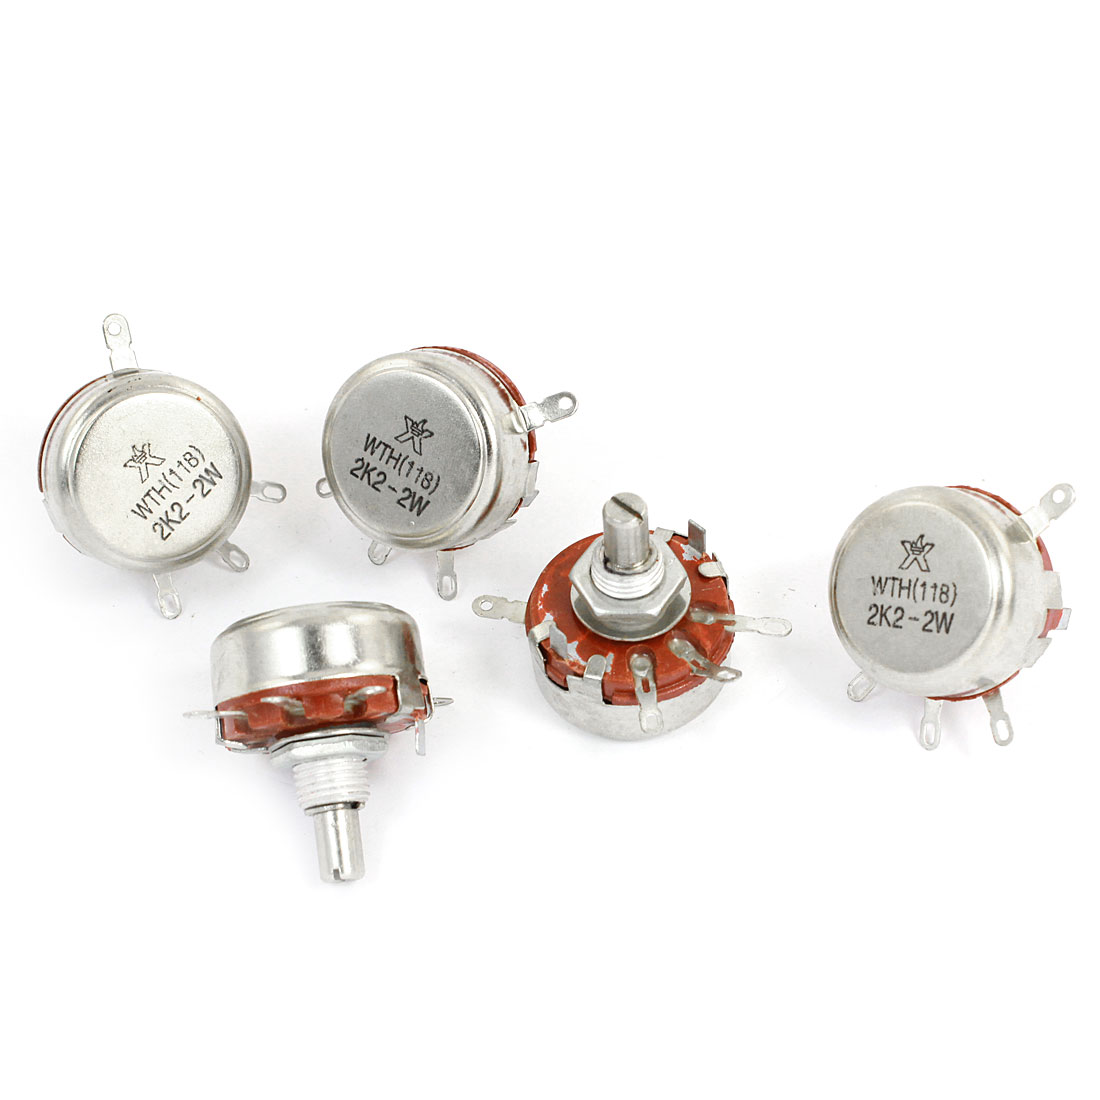 5 Pcs 2.2K ohm 2W Round Shaft 4 Terminal Rotary Carbon Potentiometer WTH118